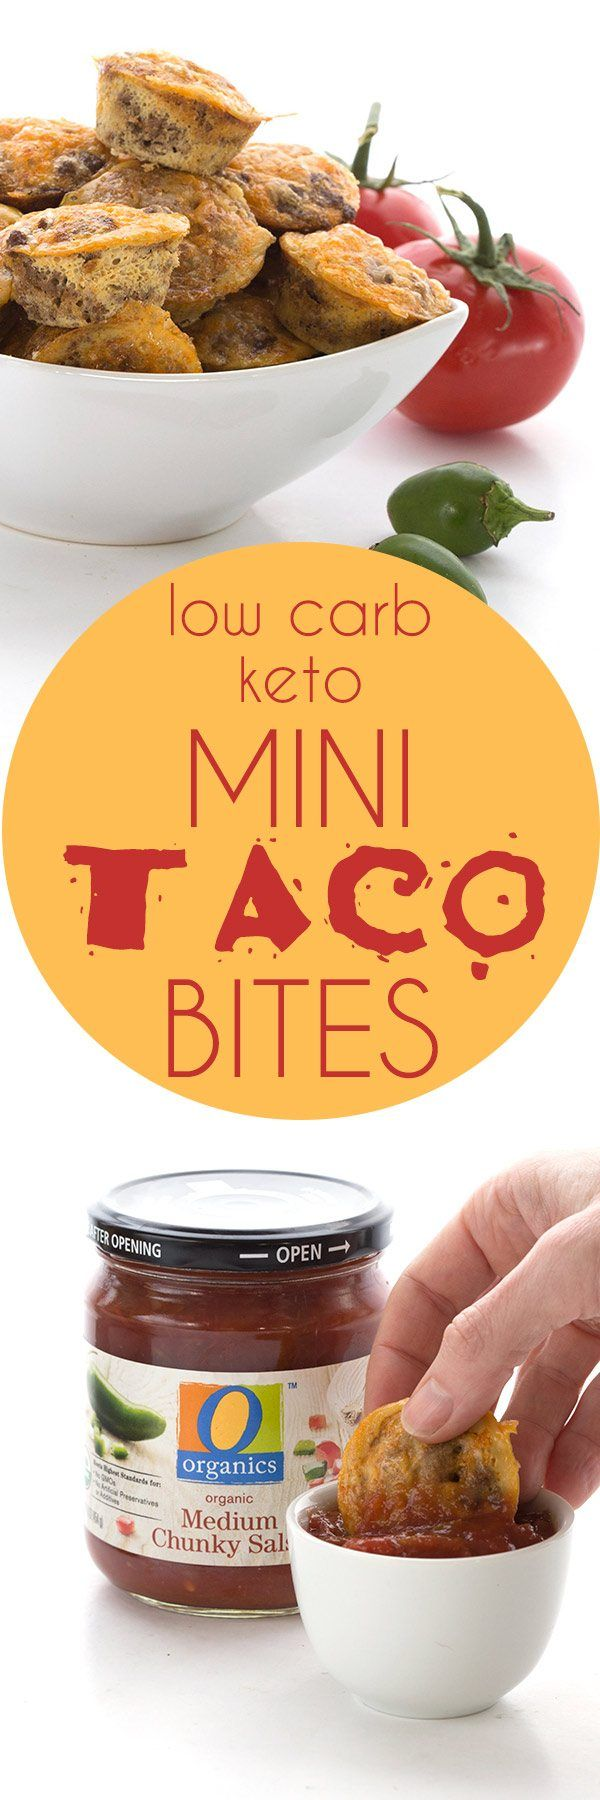 Mini Taco Bites via @dreamaboutfood